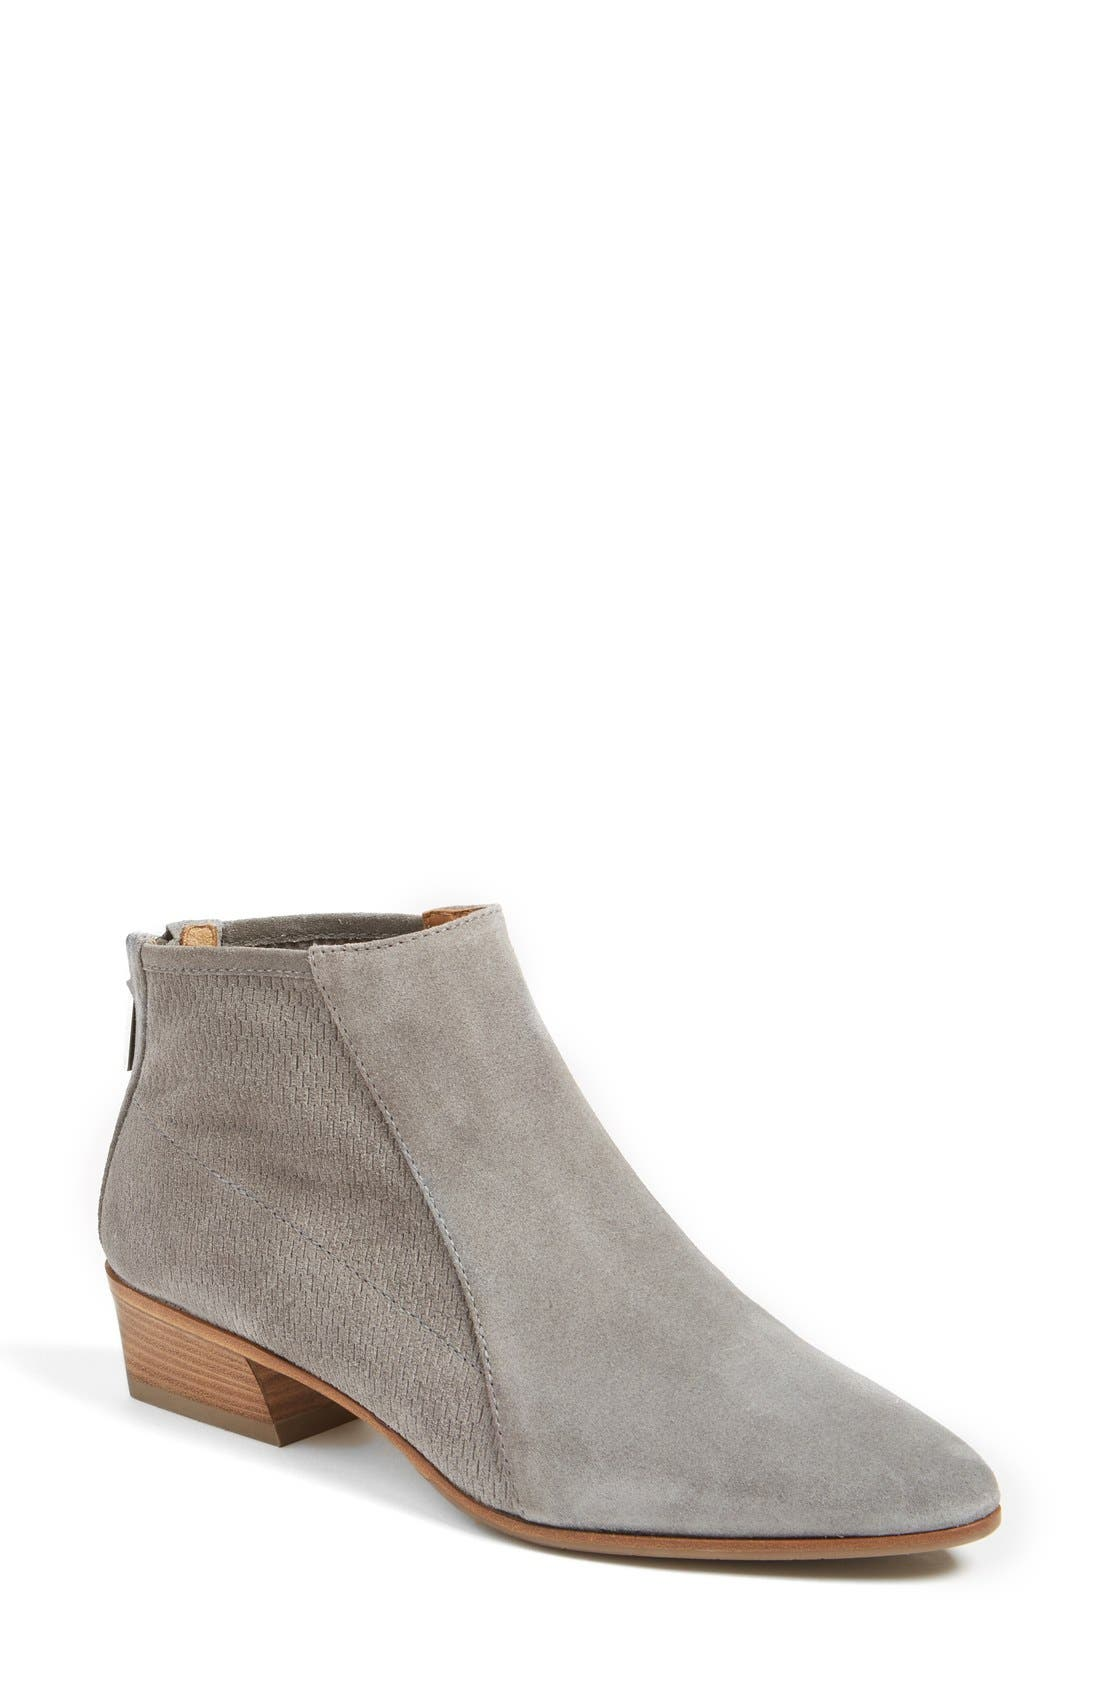 Fianna Perforated Bootie,                         Main,                         color,